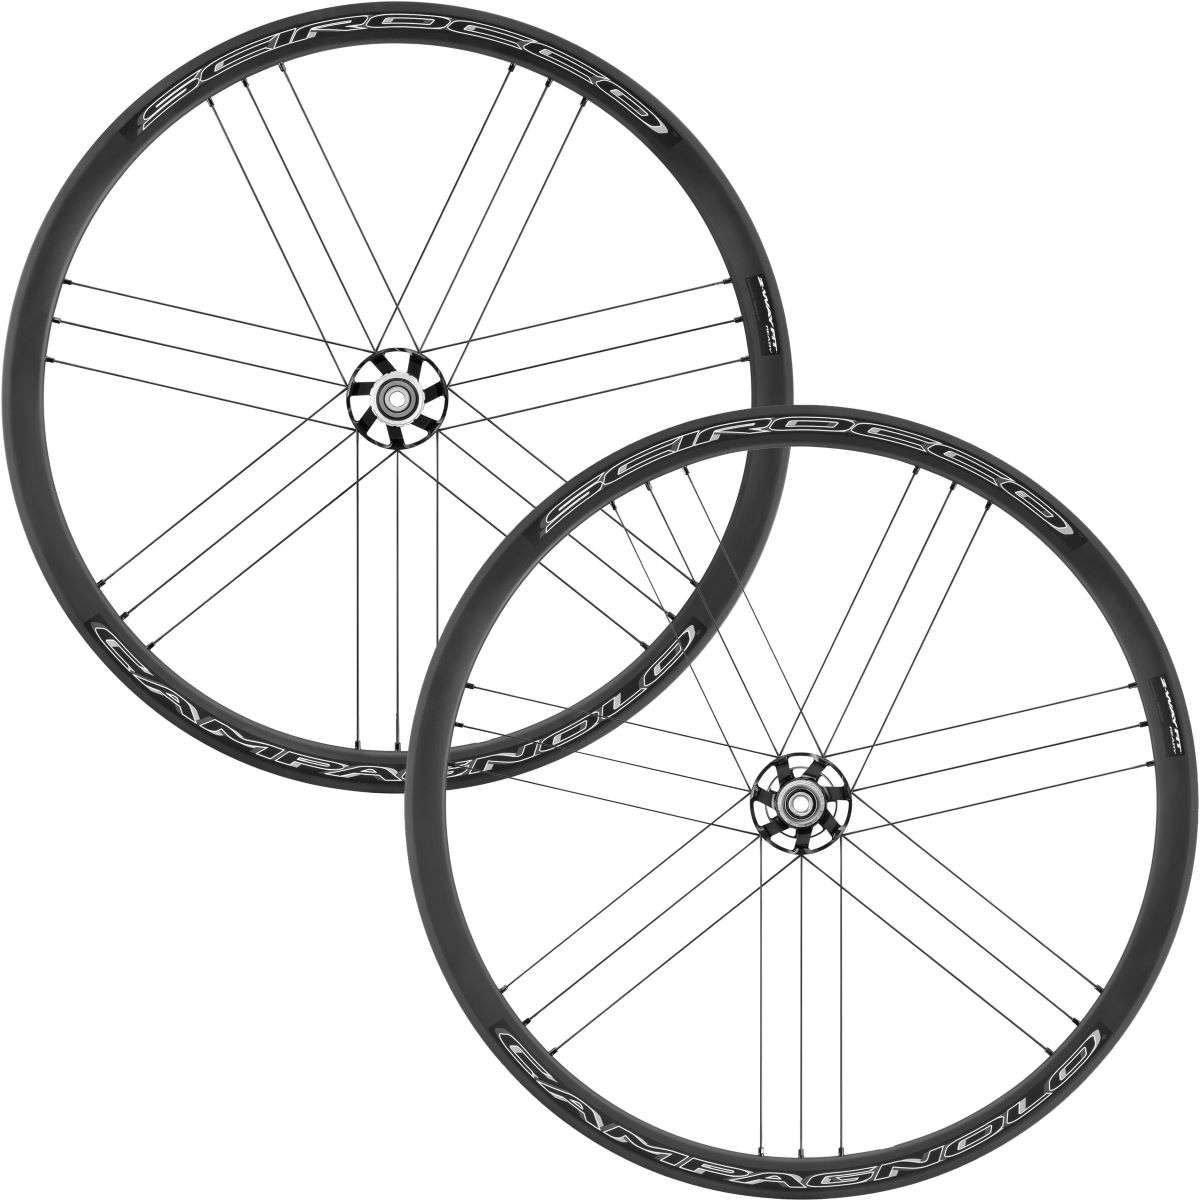 Campagnolo Scirocco DB BT12 Road Wheelset (2019) - Wheel sets